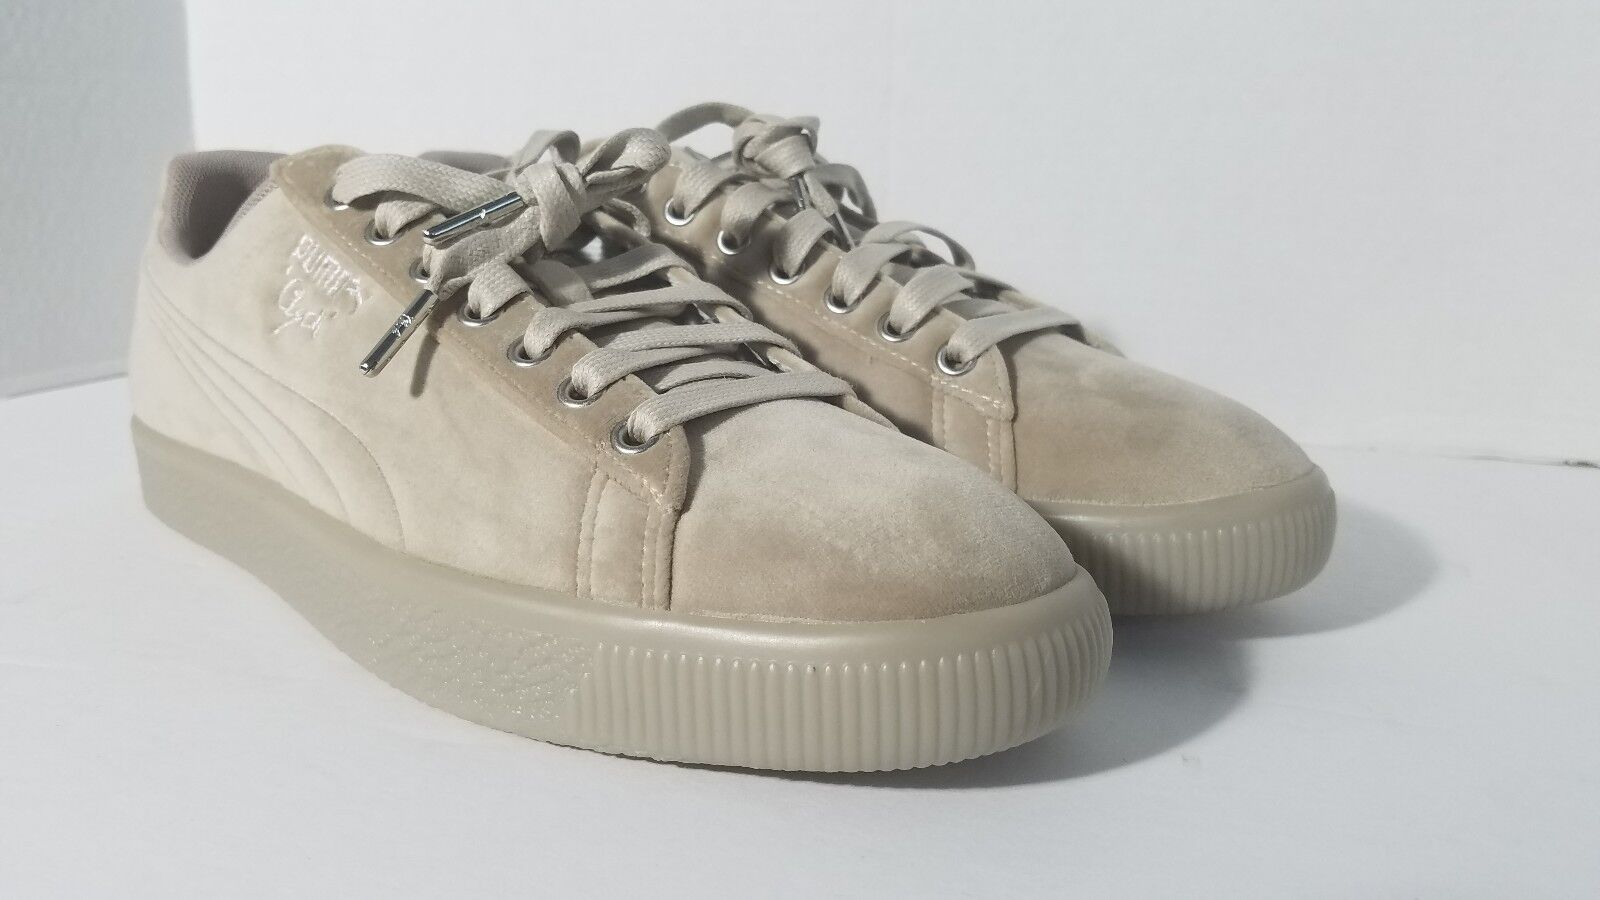 Puma Clyde Suede Classic Mens Sneaker shoes 11 Grey Tan Limited Ed. Brand New